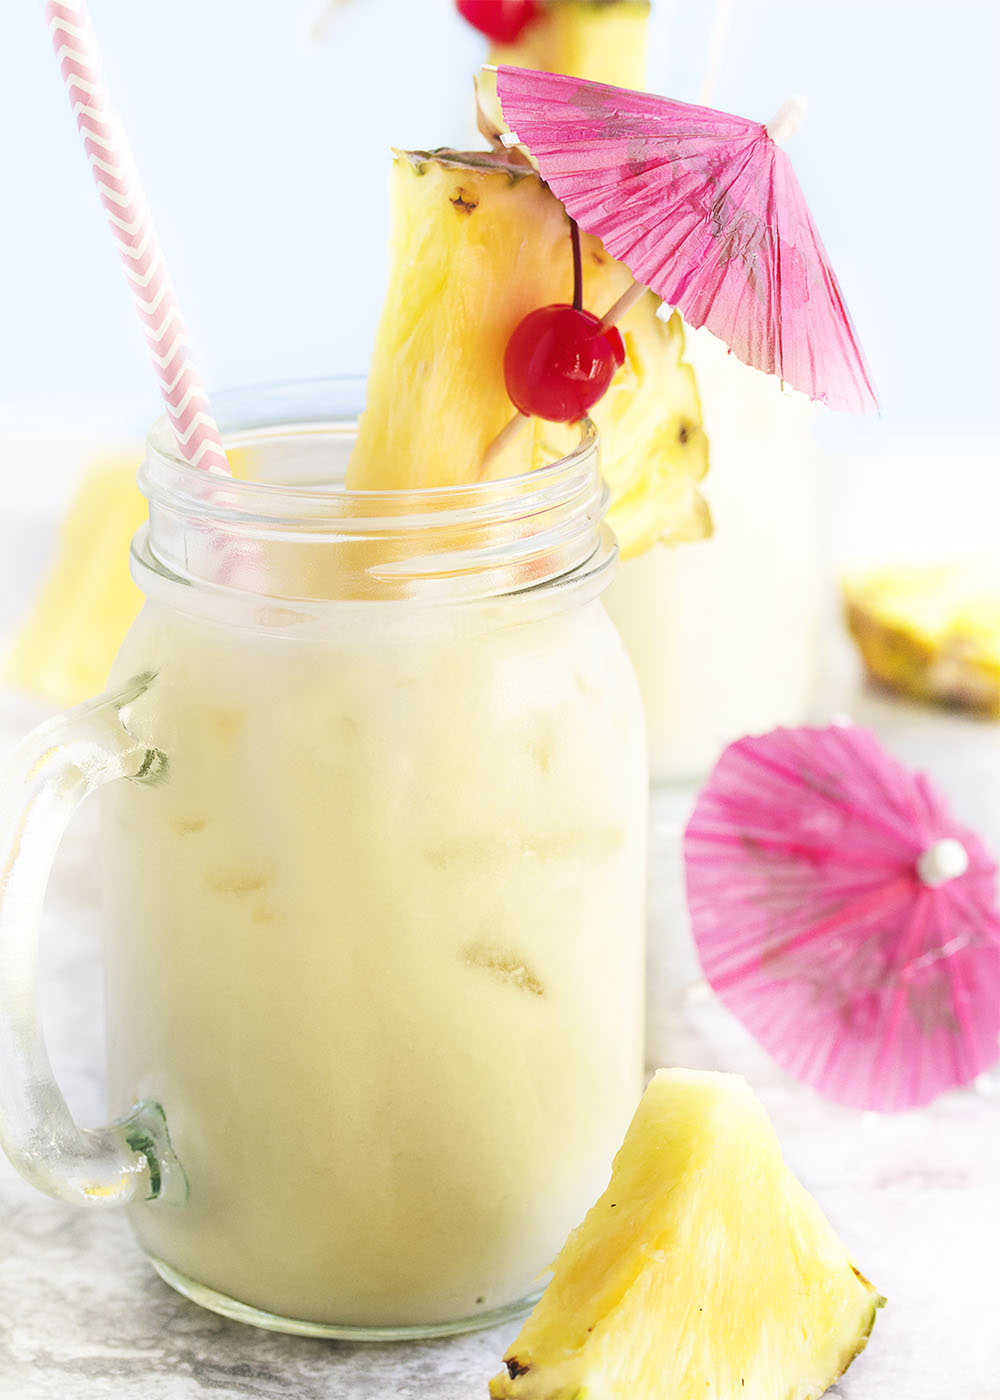 A mason jar glass full of pina colada and ice all garnished with pinapple slices and an umbrella.